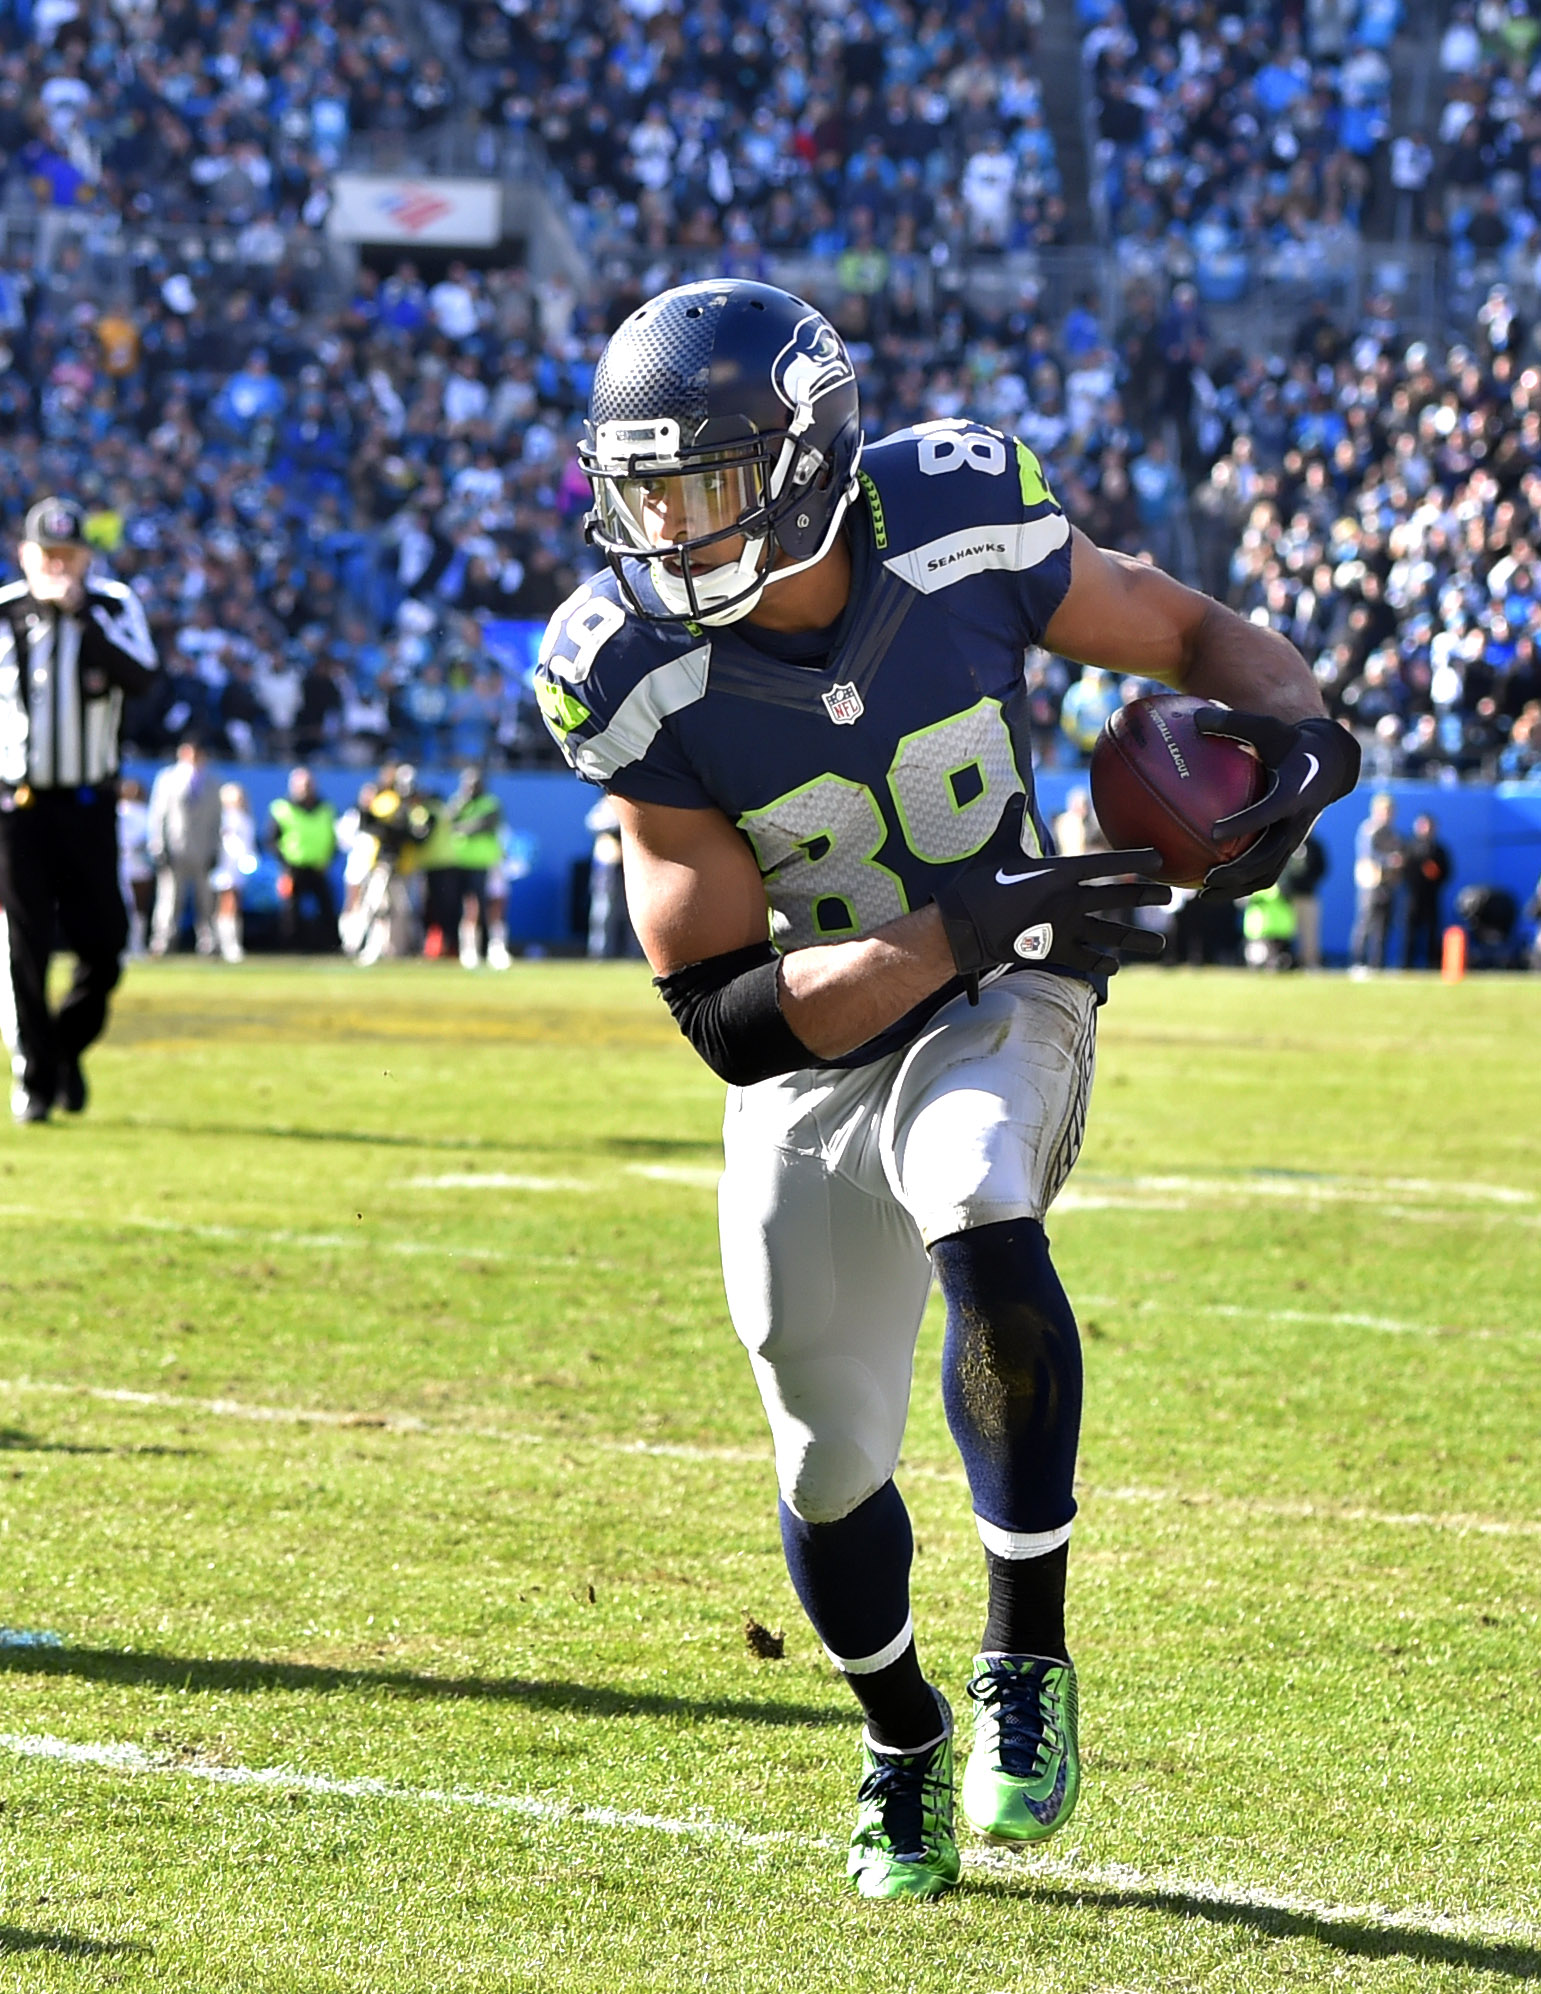 Seahawks WR Doug Baldwin Suffered Partial MCL Tear d2059f41e